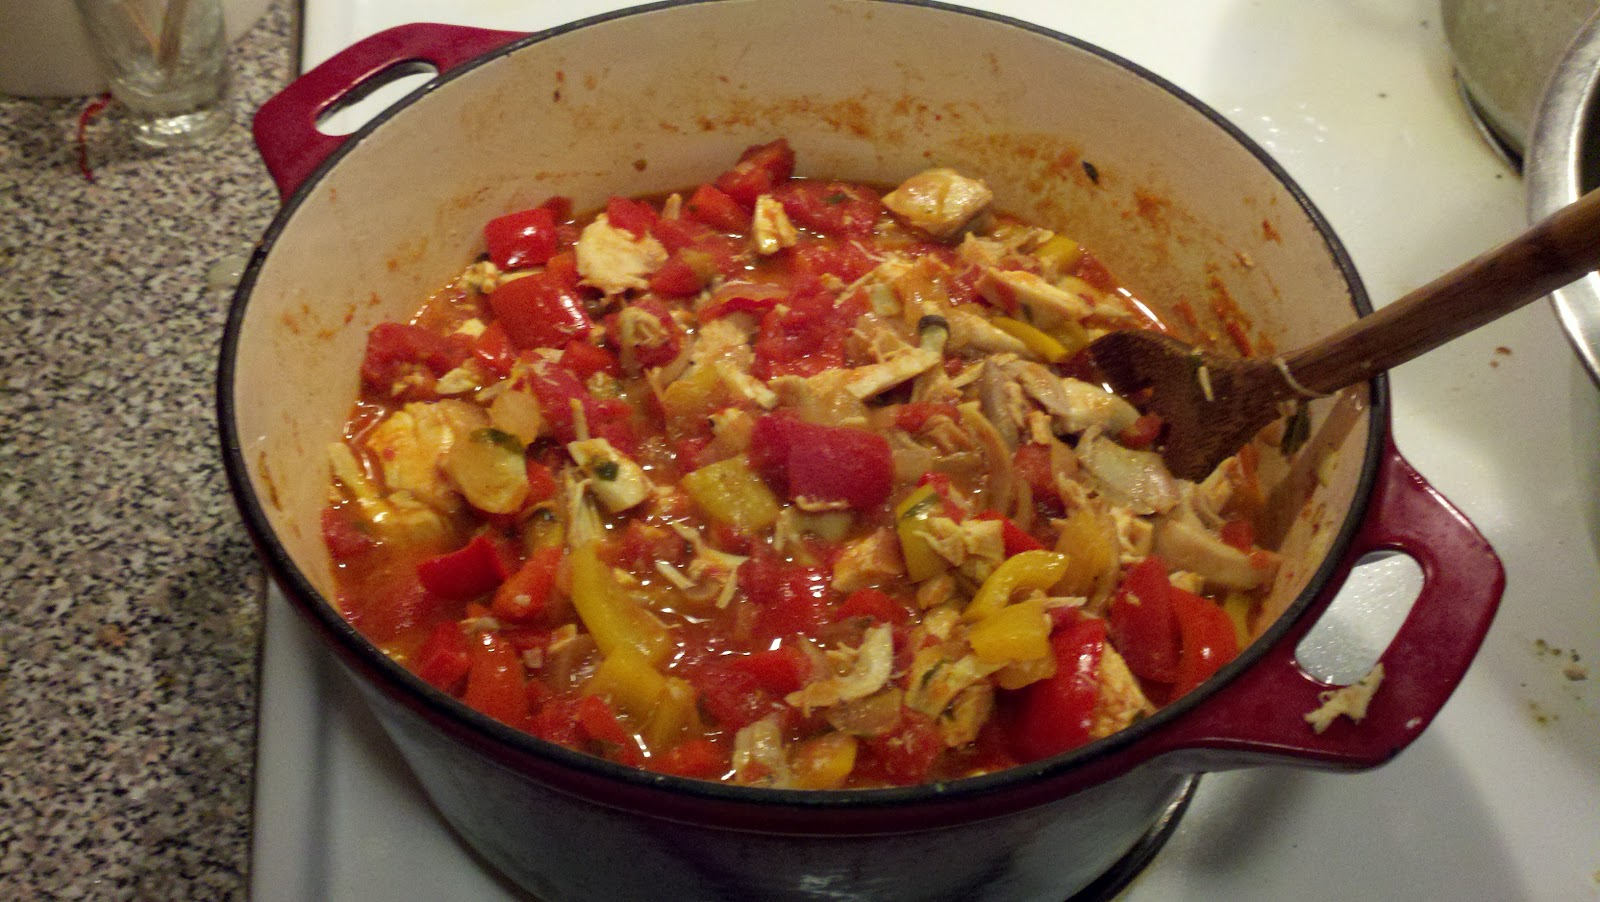 Ina Garten Chicken cooking with joey: ina garten's chicken chili